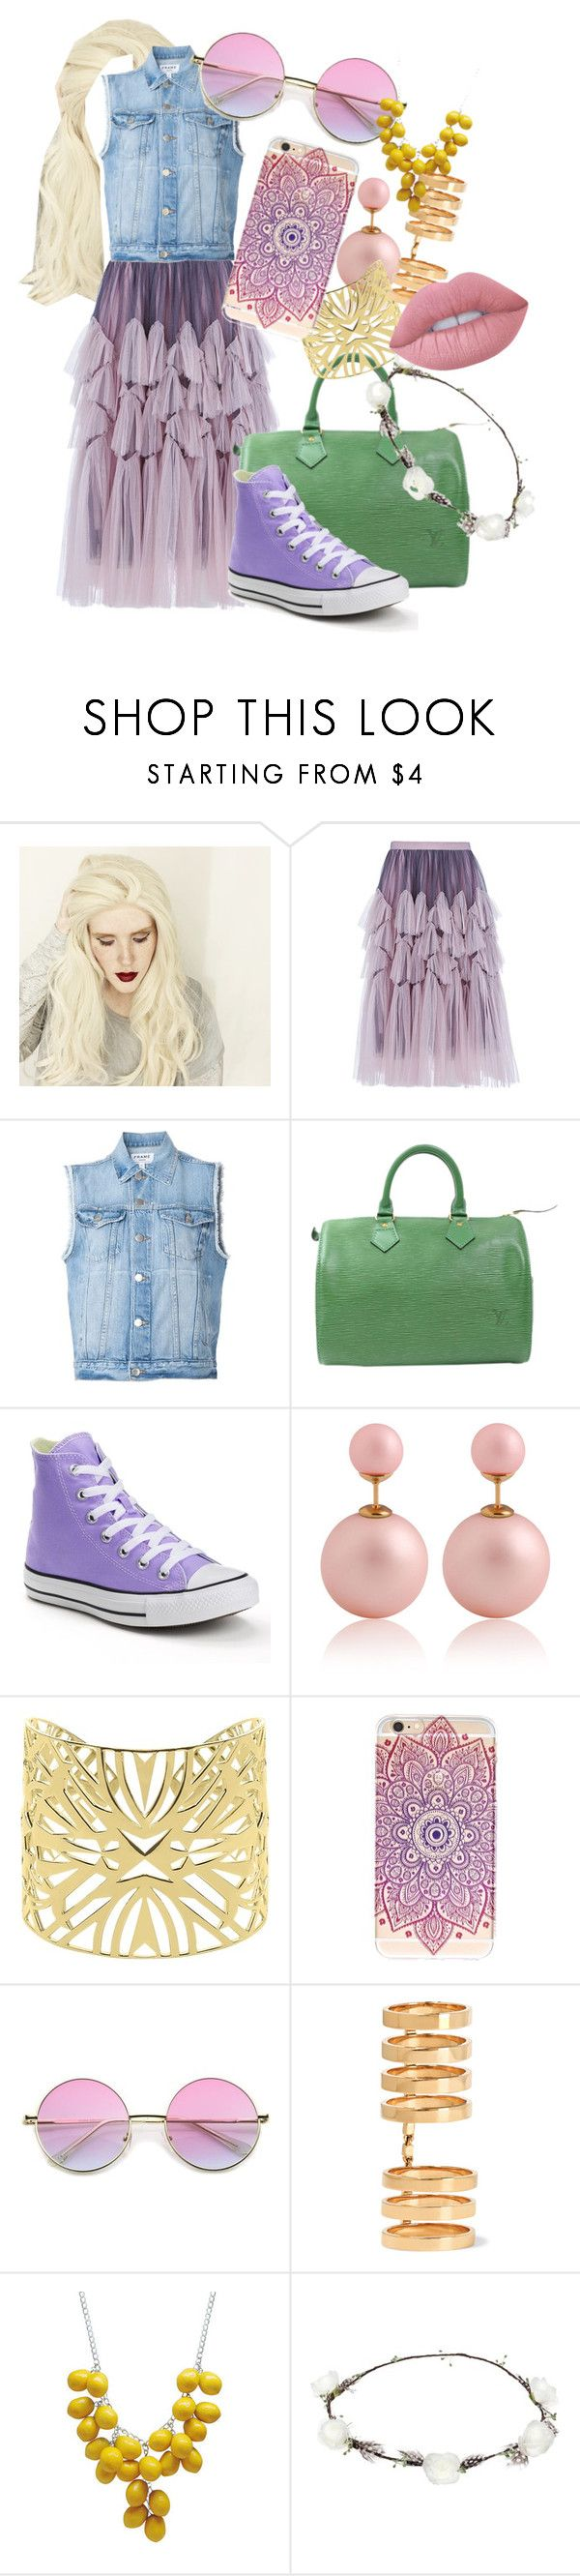 """Hipster Rapunzel"" by frostielvr ❤ liked on Polyvore featuring Dries Van Noten, Frame Denim, Louis Vuitton, Converse, Vélizance, Repossi, Lipsy, Lime Crime, Hipster and disney"